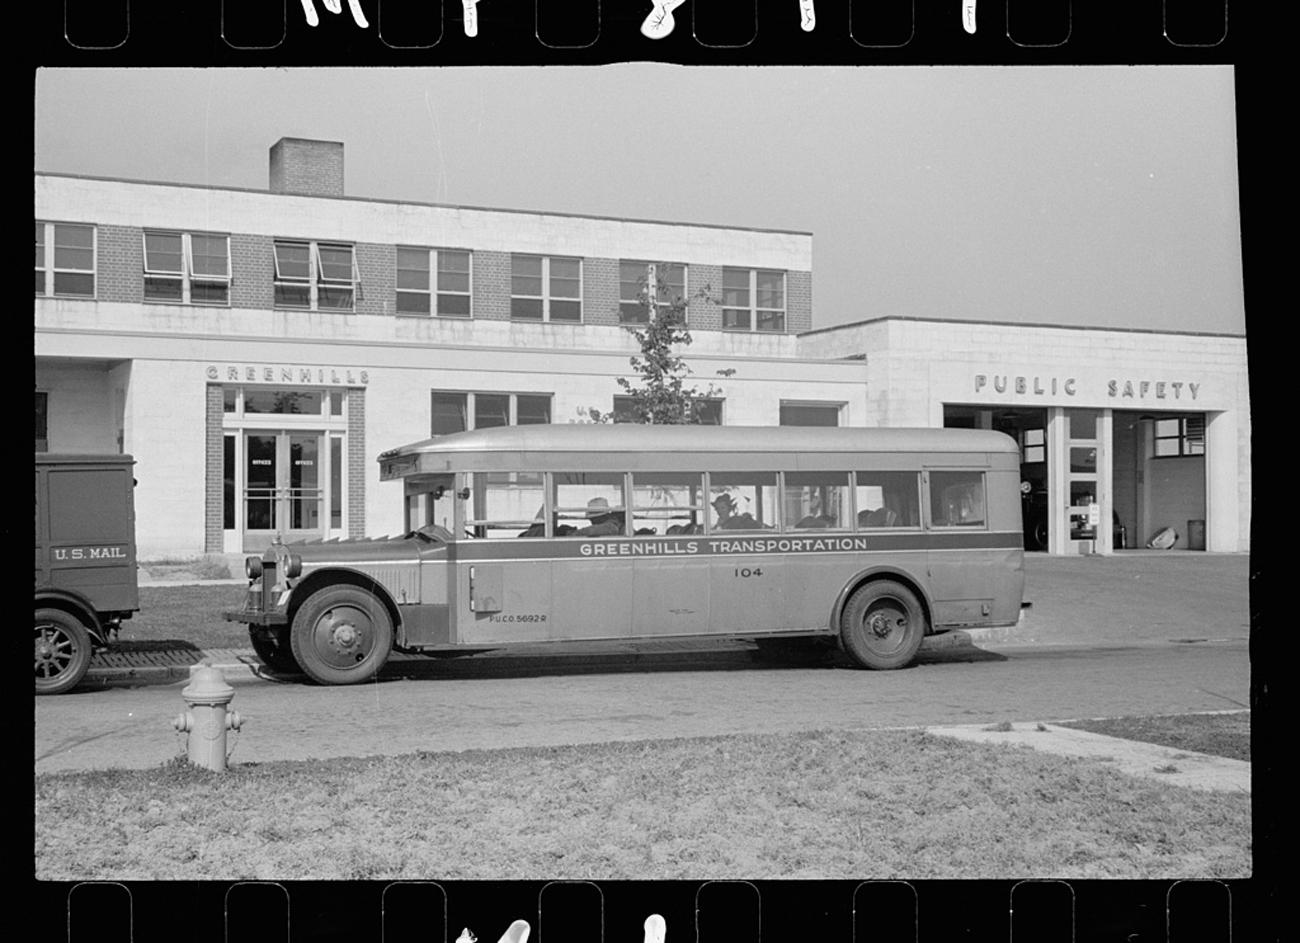 """Bus which runs between Greenhills and Cincinnati"" from October 1938 / Image: John Vachon for the U.S. Farm Security Administration/Office of War Information accessed via the Library of Congress Archives // Published: 3.4.19"